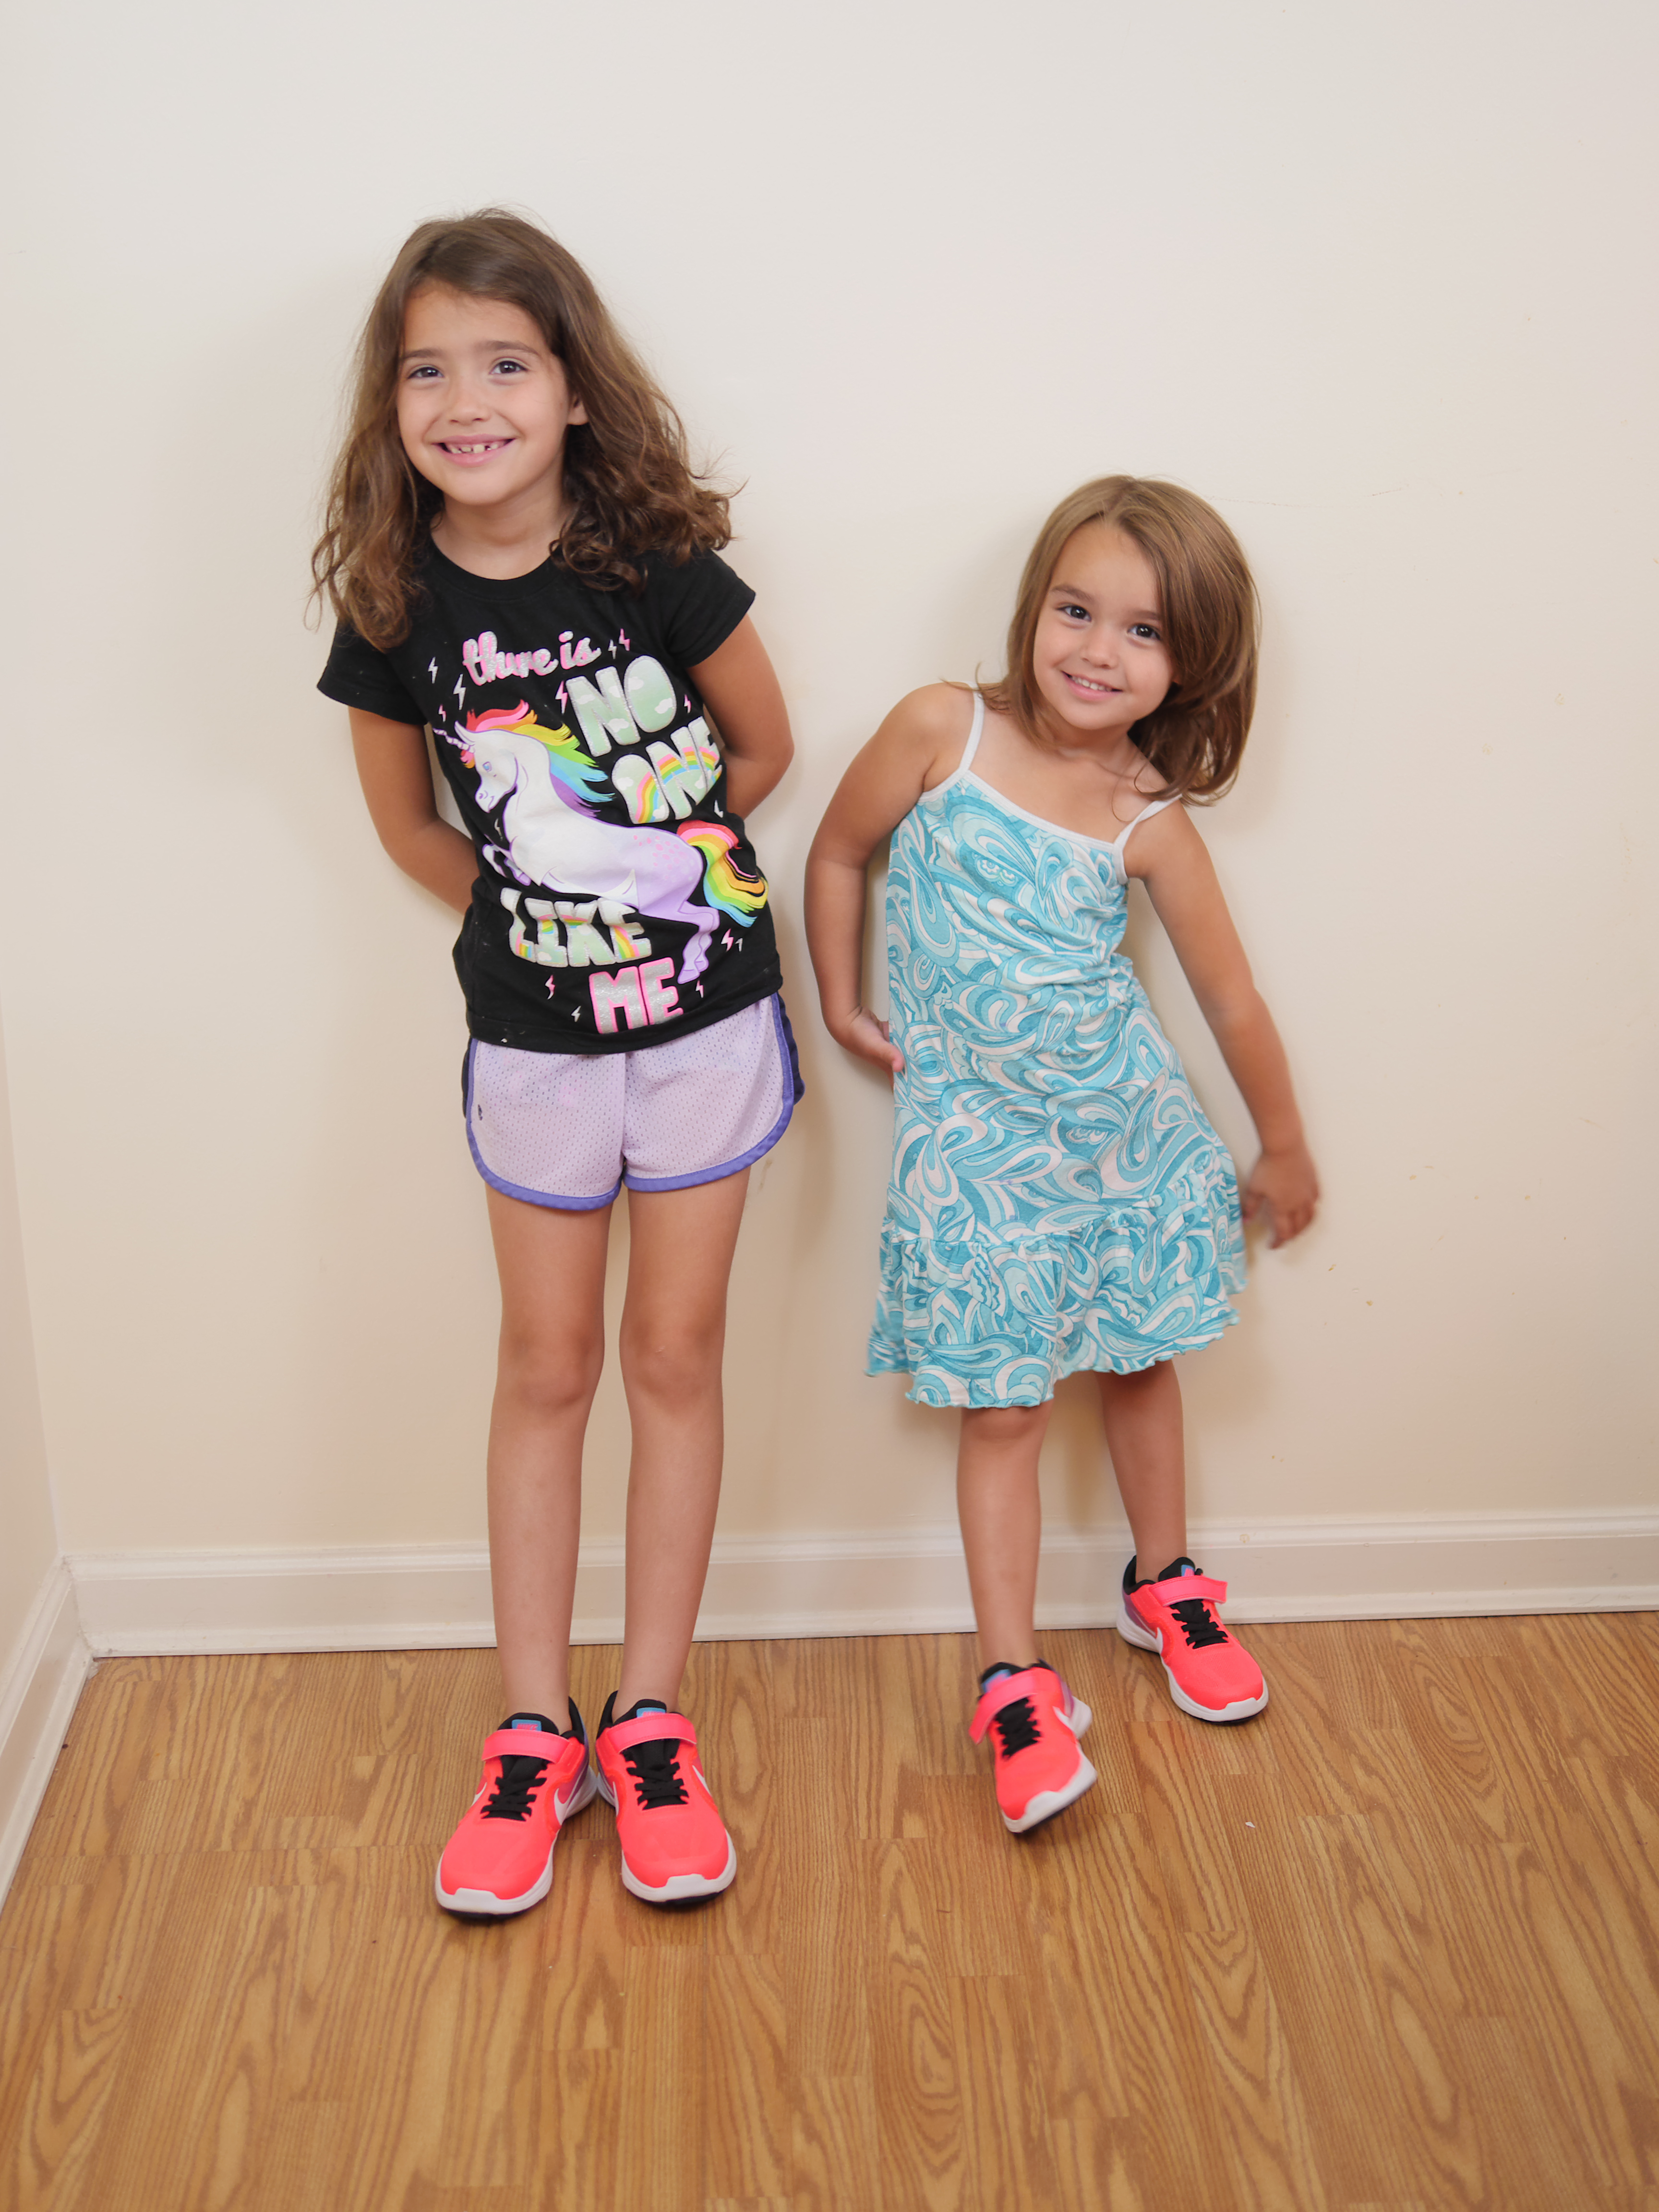 46810406f5 EasyKicks Shoe Delivery Service UNBOXING & Review – Theresa's Reviews